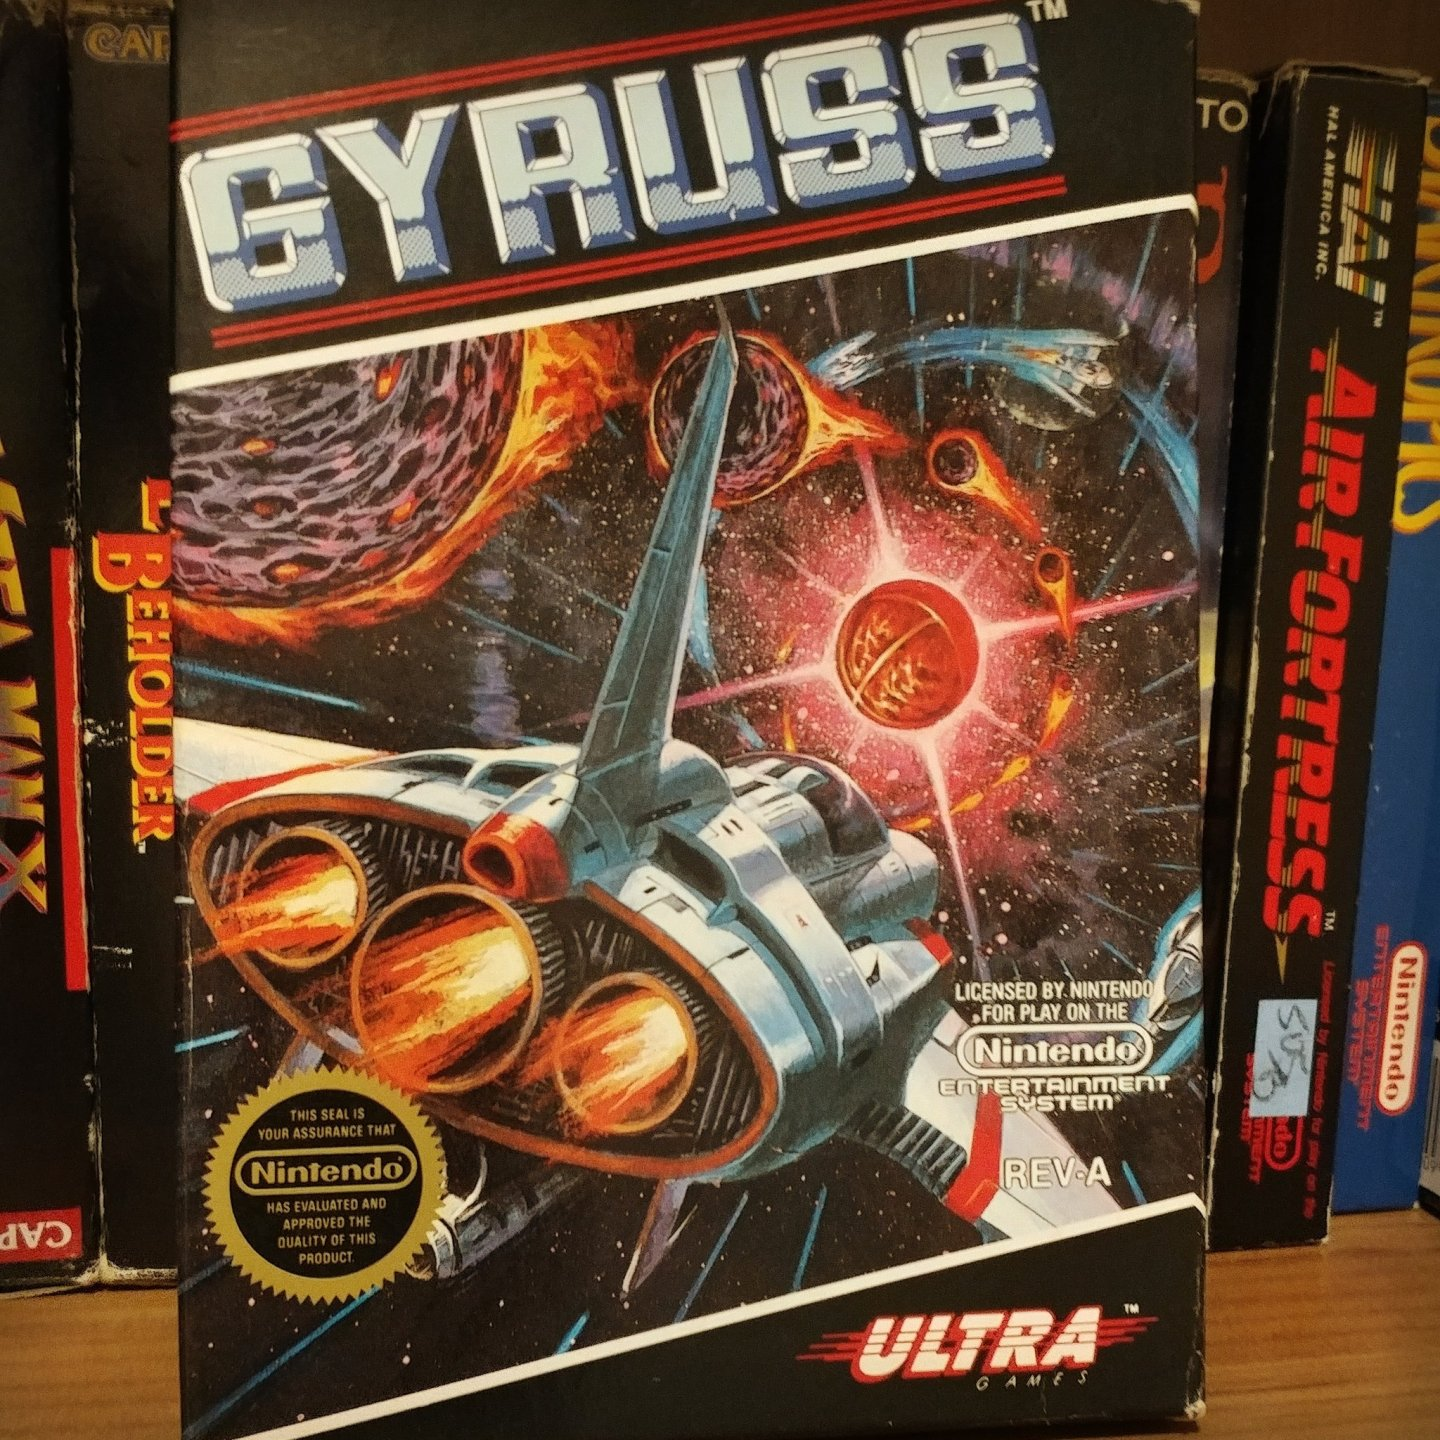 Gyruss for NES on my shelf ghettogamer.net